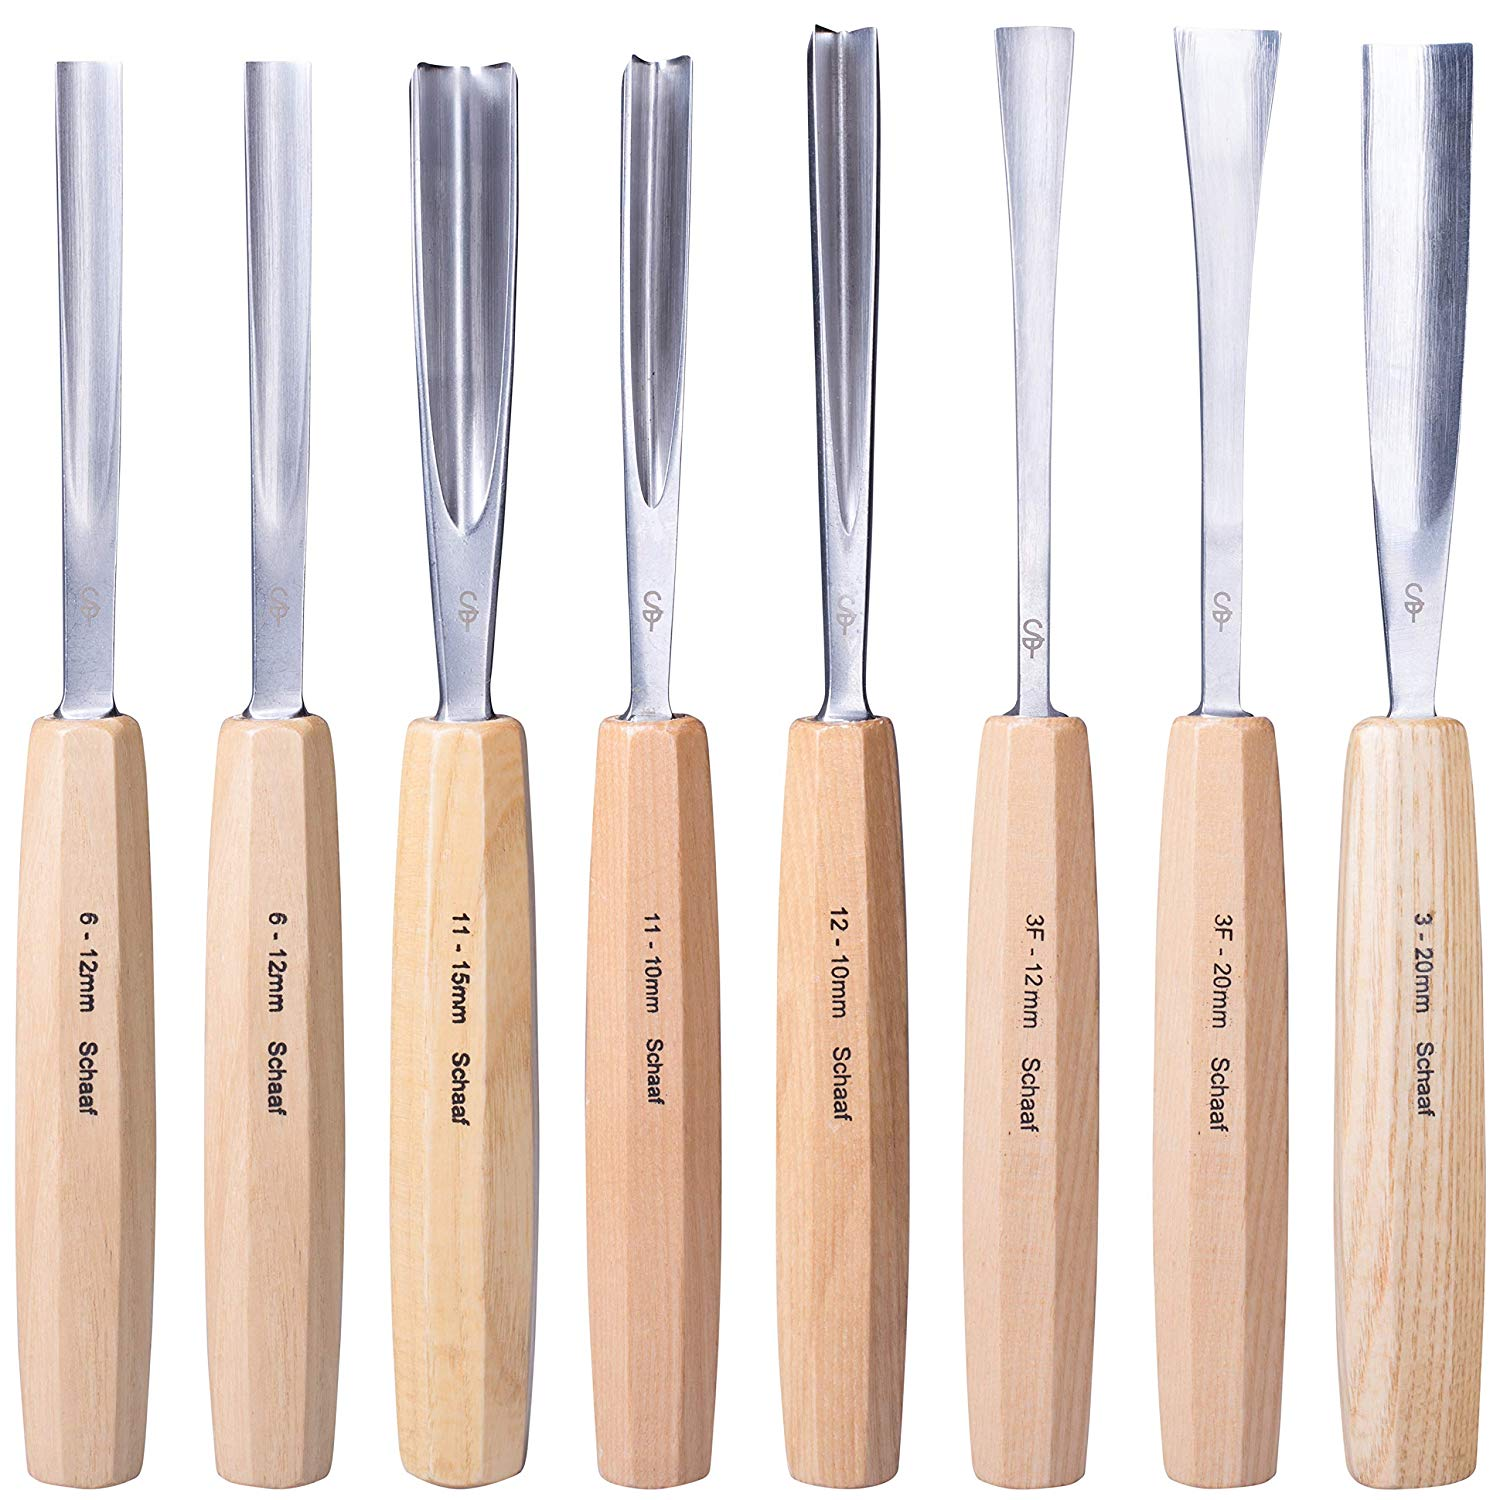 Premium - Set of 7 - Hand Sharpened Beginner Wood Carving Tools - Additional Profiles